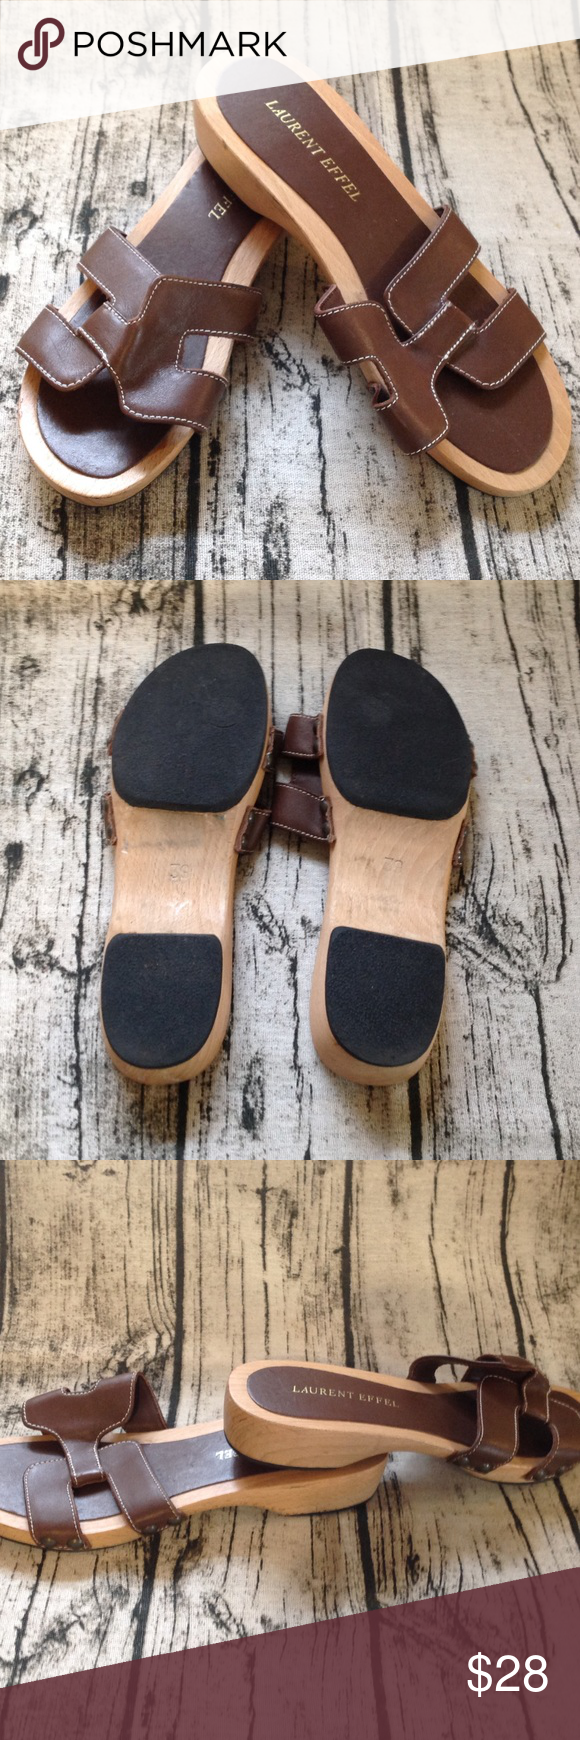 3649792940f Laurent Eiffel Sandals Nice wooden sandal with leather upper. Size 9 and in  very good condition. 1